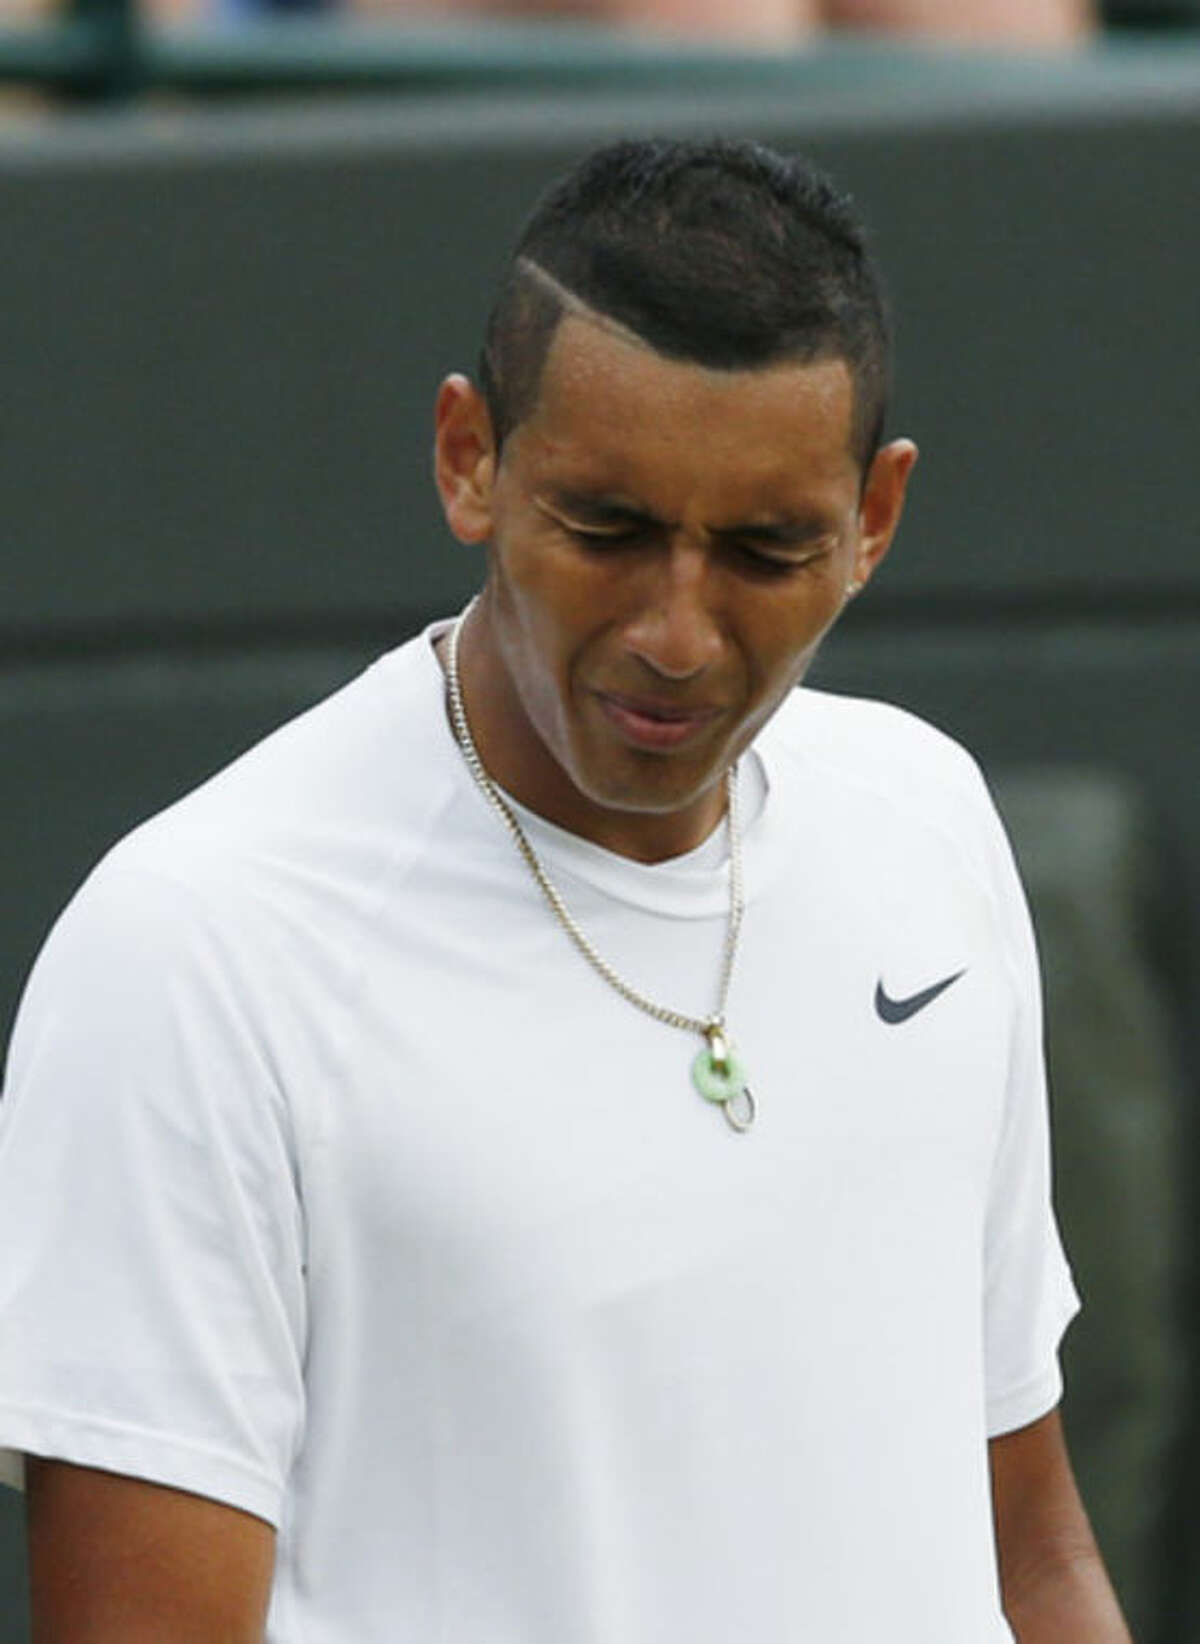 Nick Kyrgios of Australia reacts after losing a point during the men's singles quarterfinal match against Milos Raonic of Canada at the All England Lawn Tennis Championships in Wimbledon, London, Wednesday, July 2, 2014. (AP Photo/Ben Curtis)